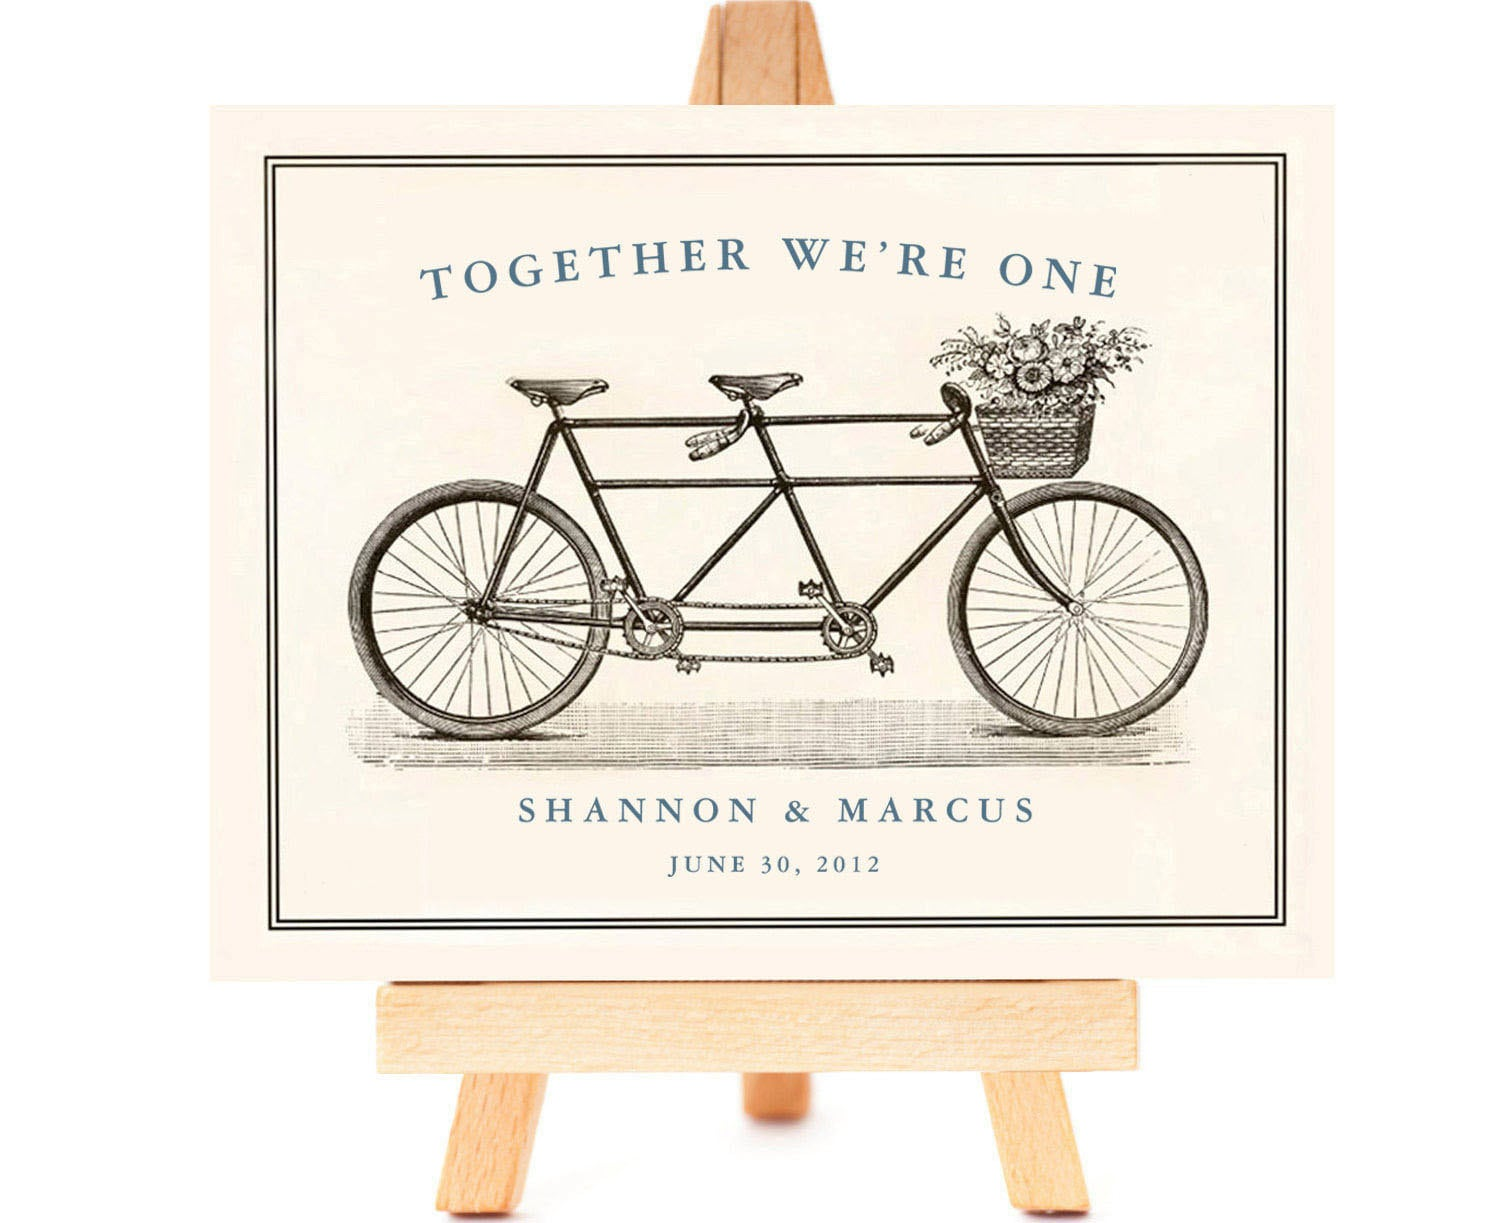 Handmade Wedding Gifts For Bride And Groom: Tandem Bike Bride And Groom Custom Wedding Gift For Couples